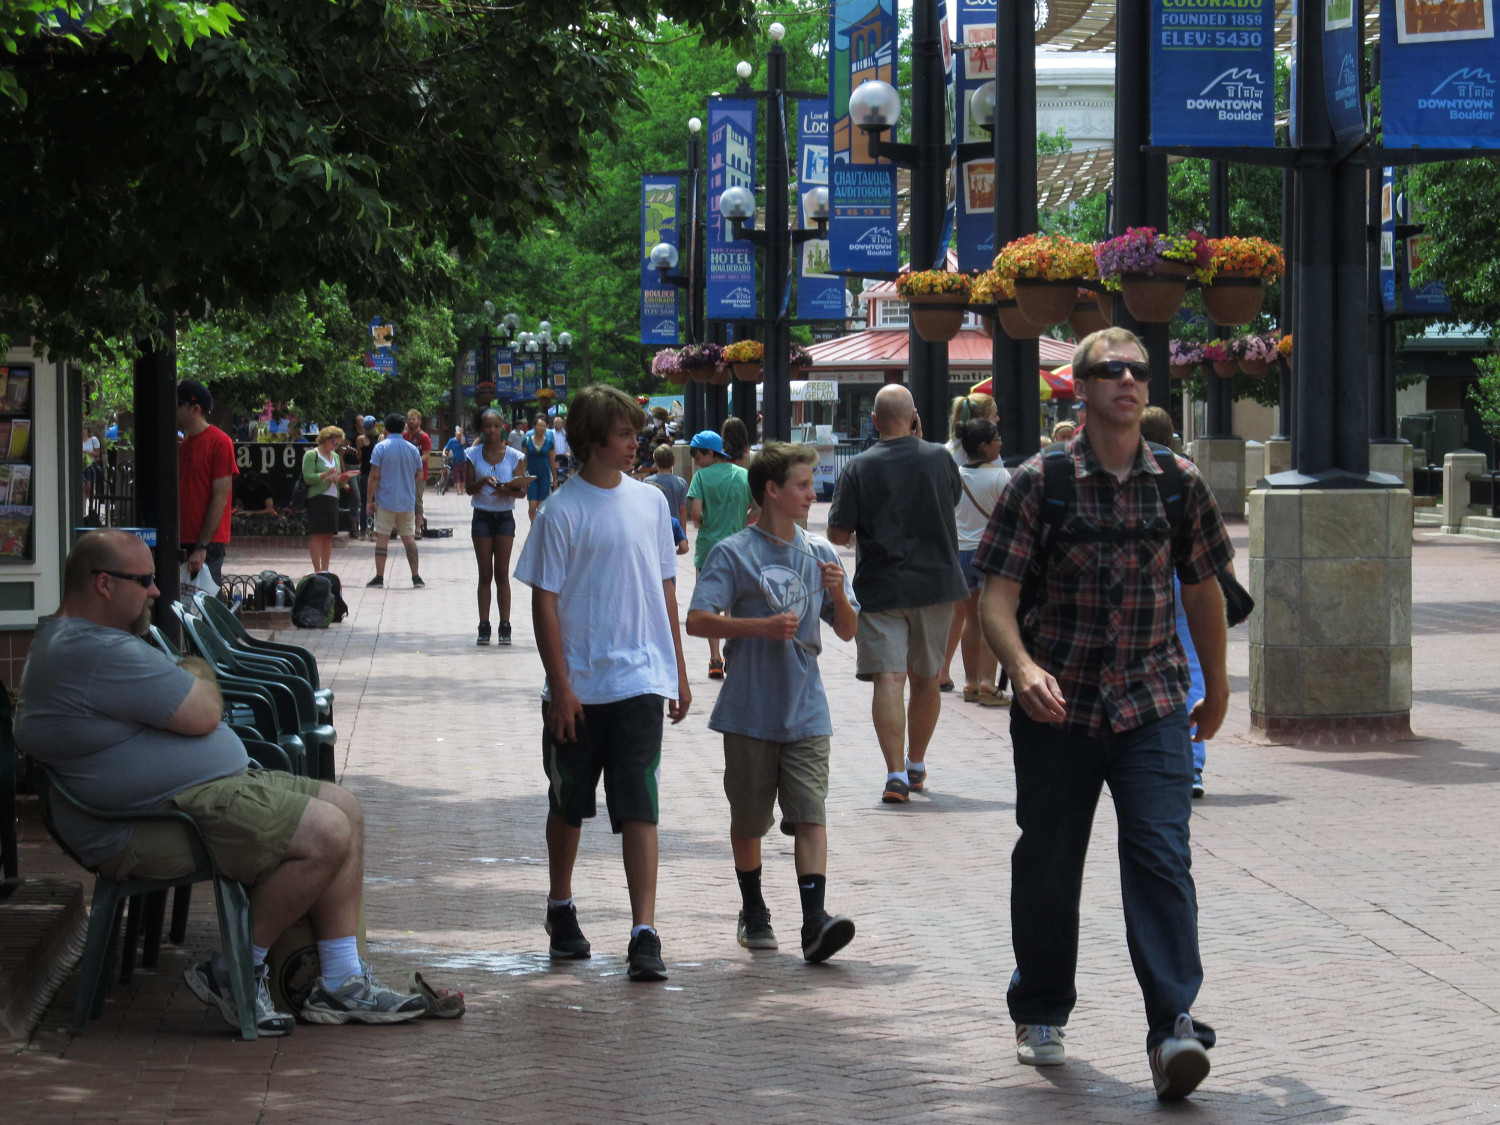 5 Essential Ingredients Of A Great Public Space